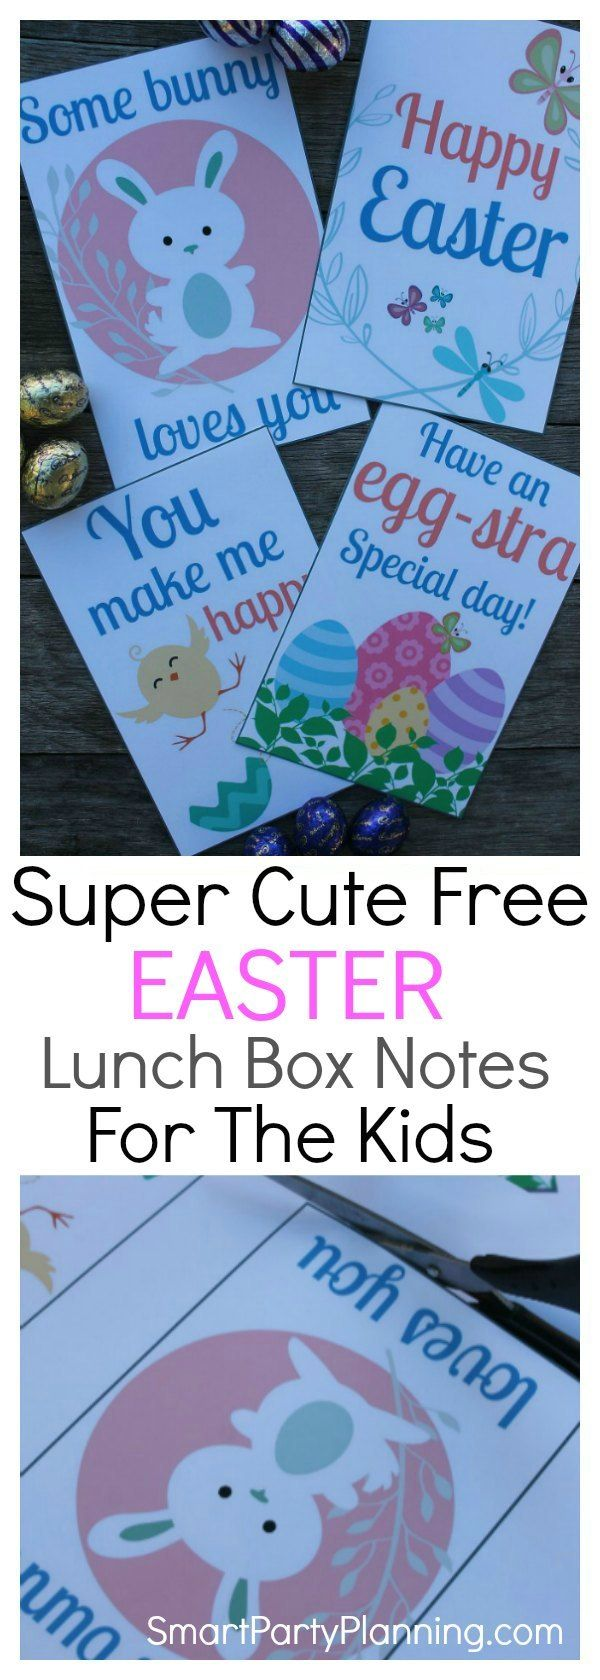 Free Printable Easter lunch box notes for kids. Download an adorable set of 4 lunch box notes that the kids will love for Easter. It's a fun and easy craft idea that will provide the children with a wonderful surprise when they open their lunch box at school. A special note from home always brighten the day and it couldn't be easier with these free printable's. #Freeprintable #Easter #Lunchboxnotes #Kids